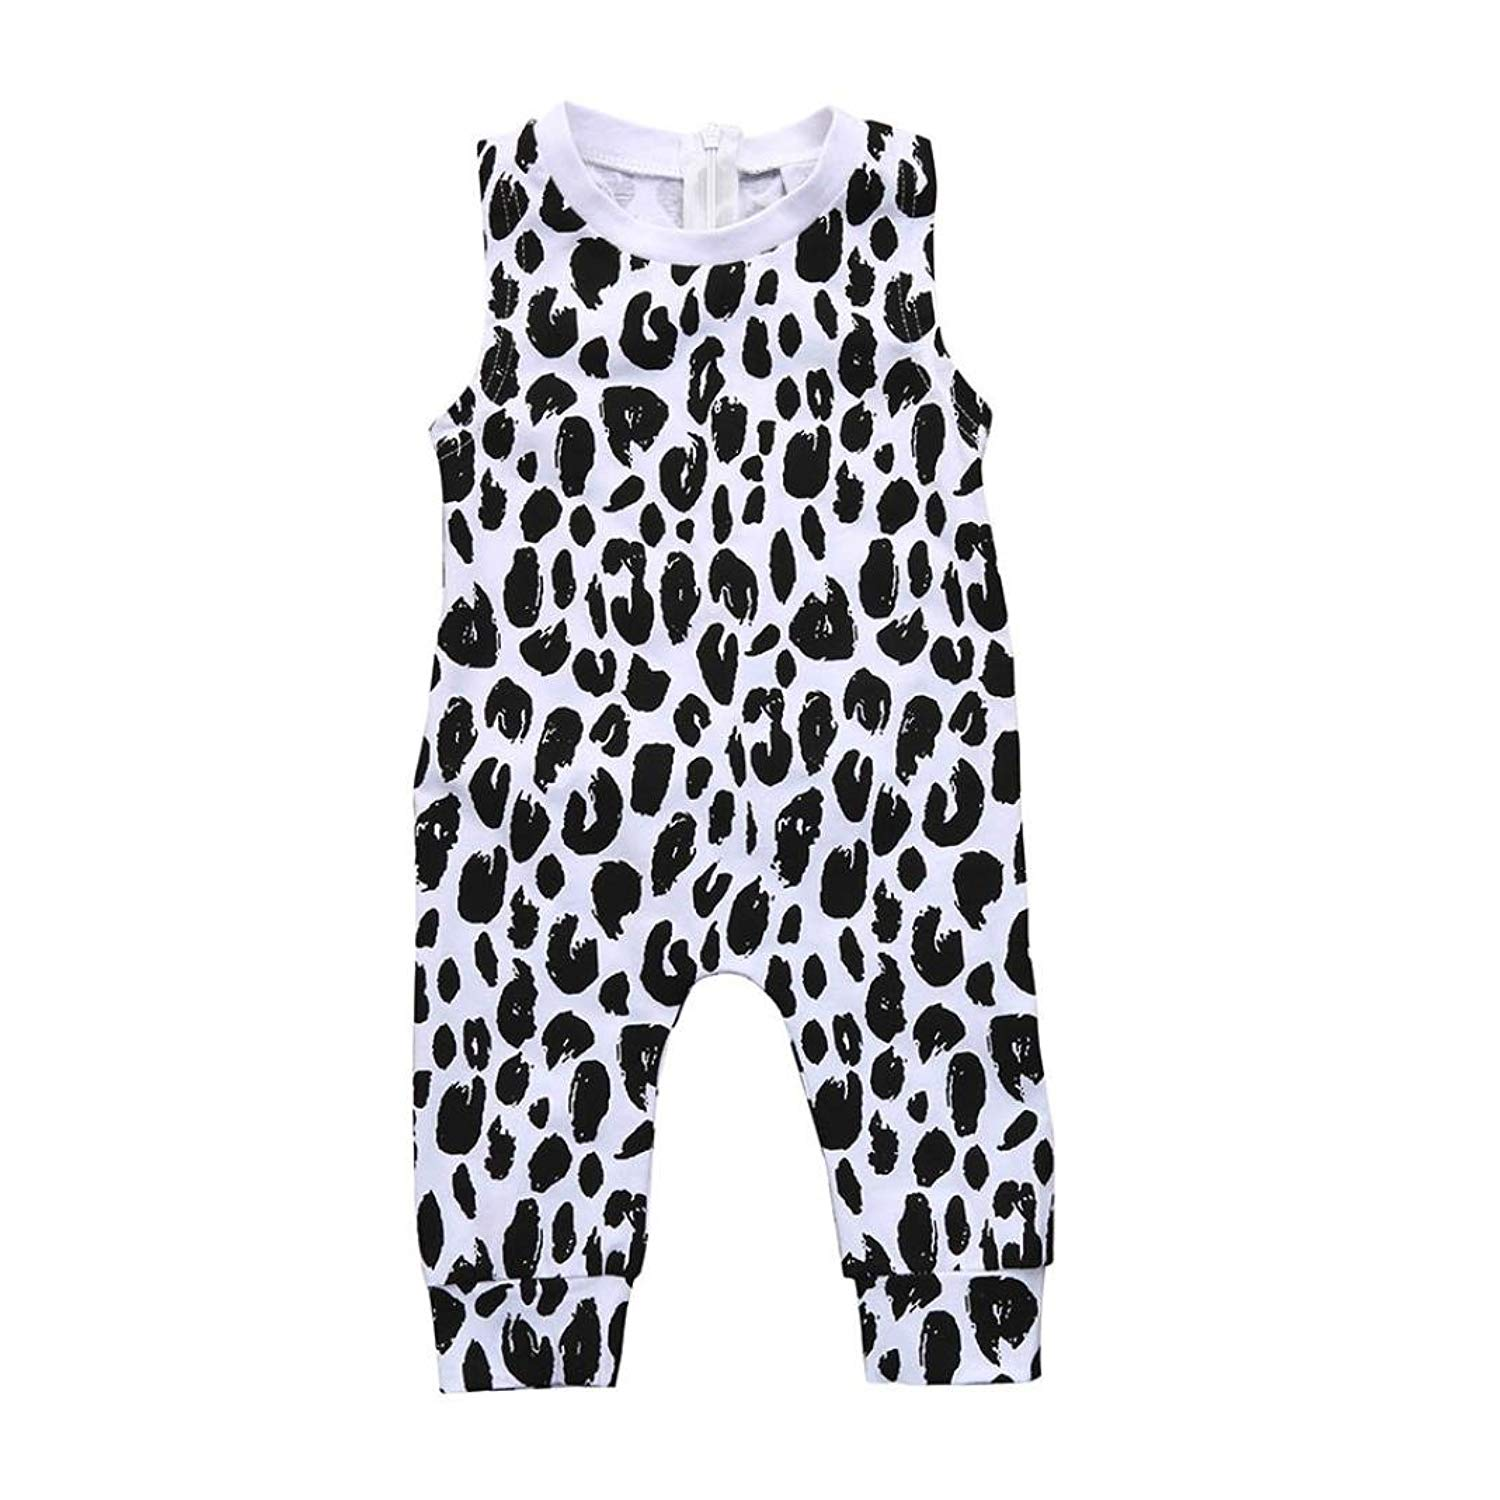 8c356cdf7 Get Quotations · Winsummer Baby Boys Summer Sleeveless Leopard Harem Romper  Jumpsuit Onecies Easter Outfits